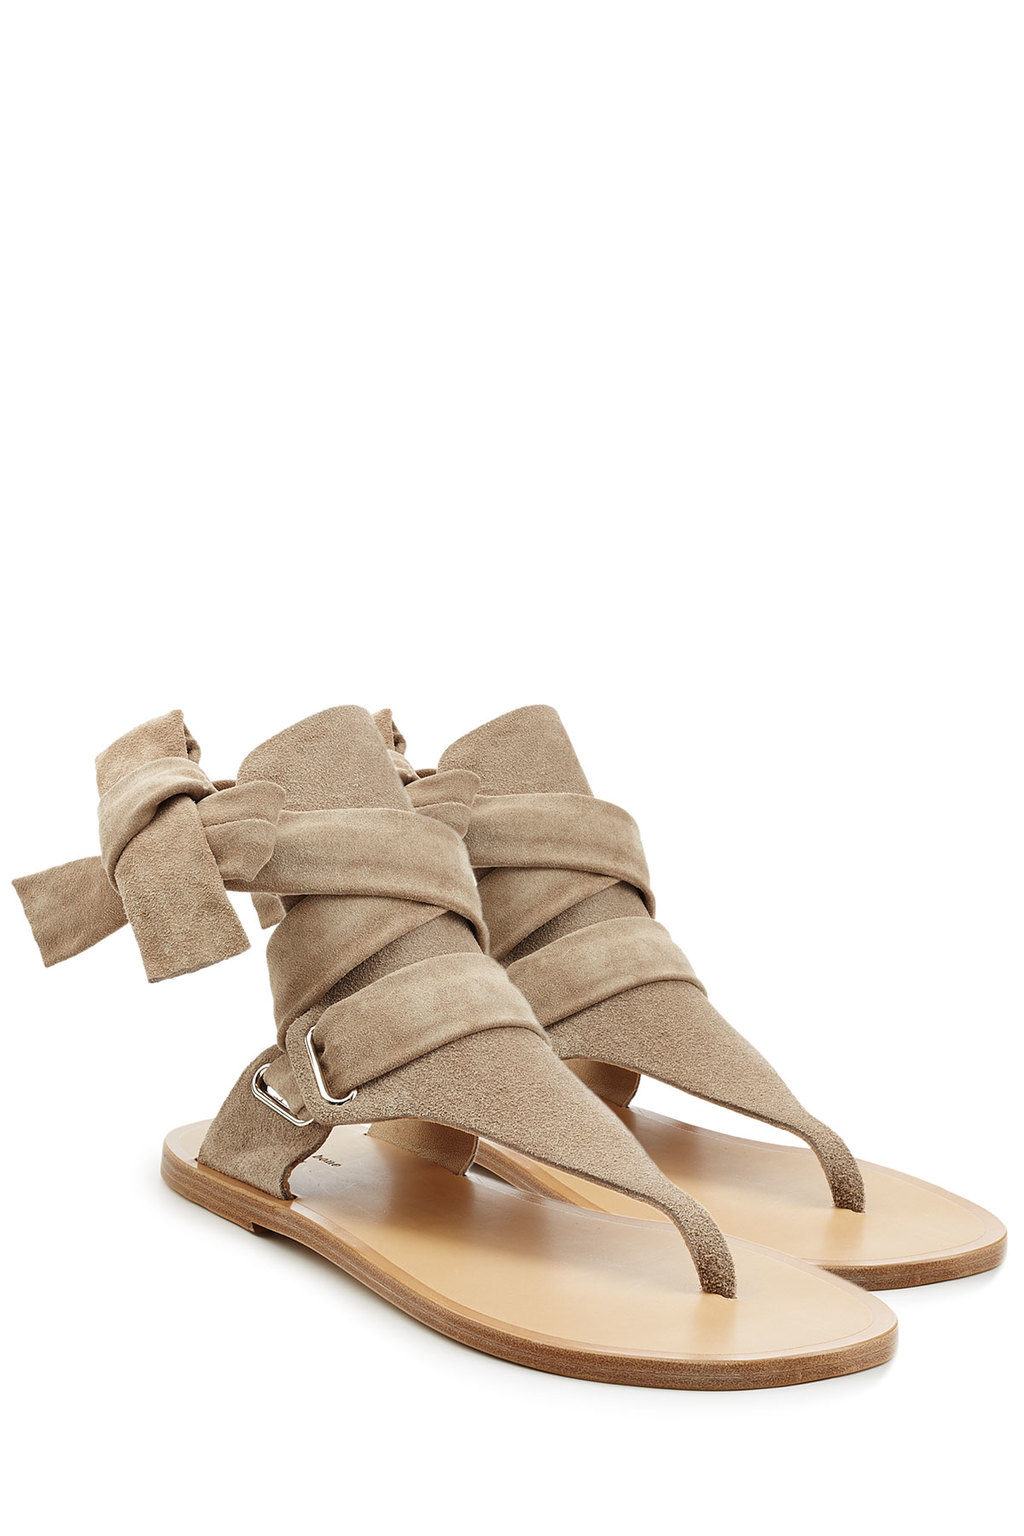 Stretch Suede Wrap Sandals - predominant colour: stone; material: suede; heel height: flat; ankle detail: ankle tie; heel: block; toe: toe thongs; style: flip flops; occasions: holiday; finish: plain; pattern: plain; season: s/s 2016; wardrobe: highlight